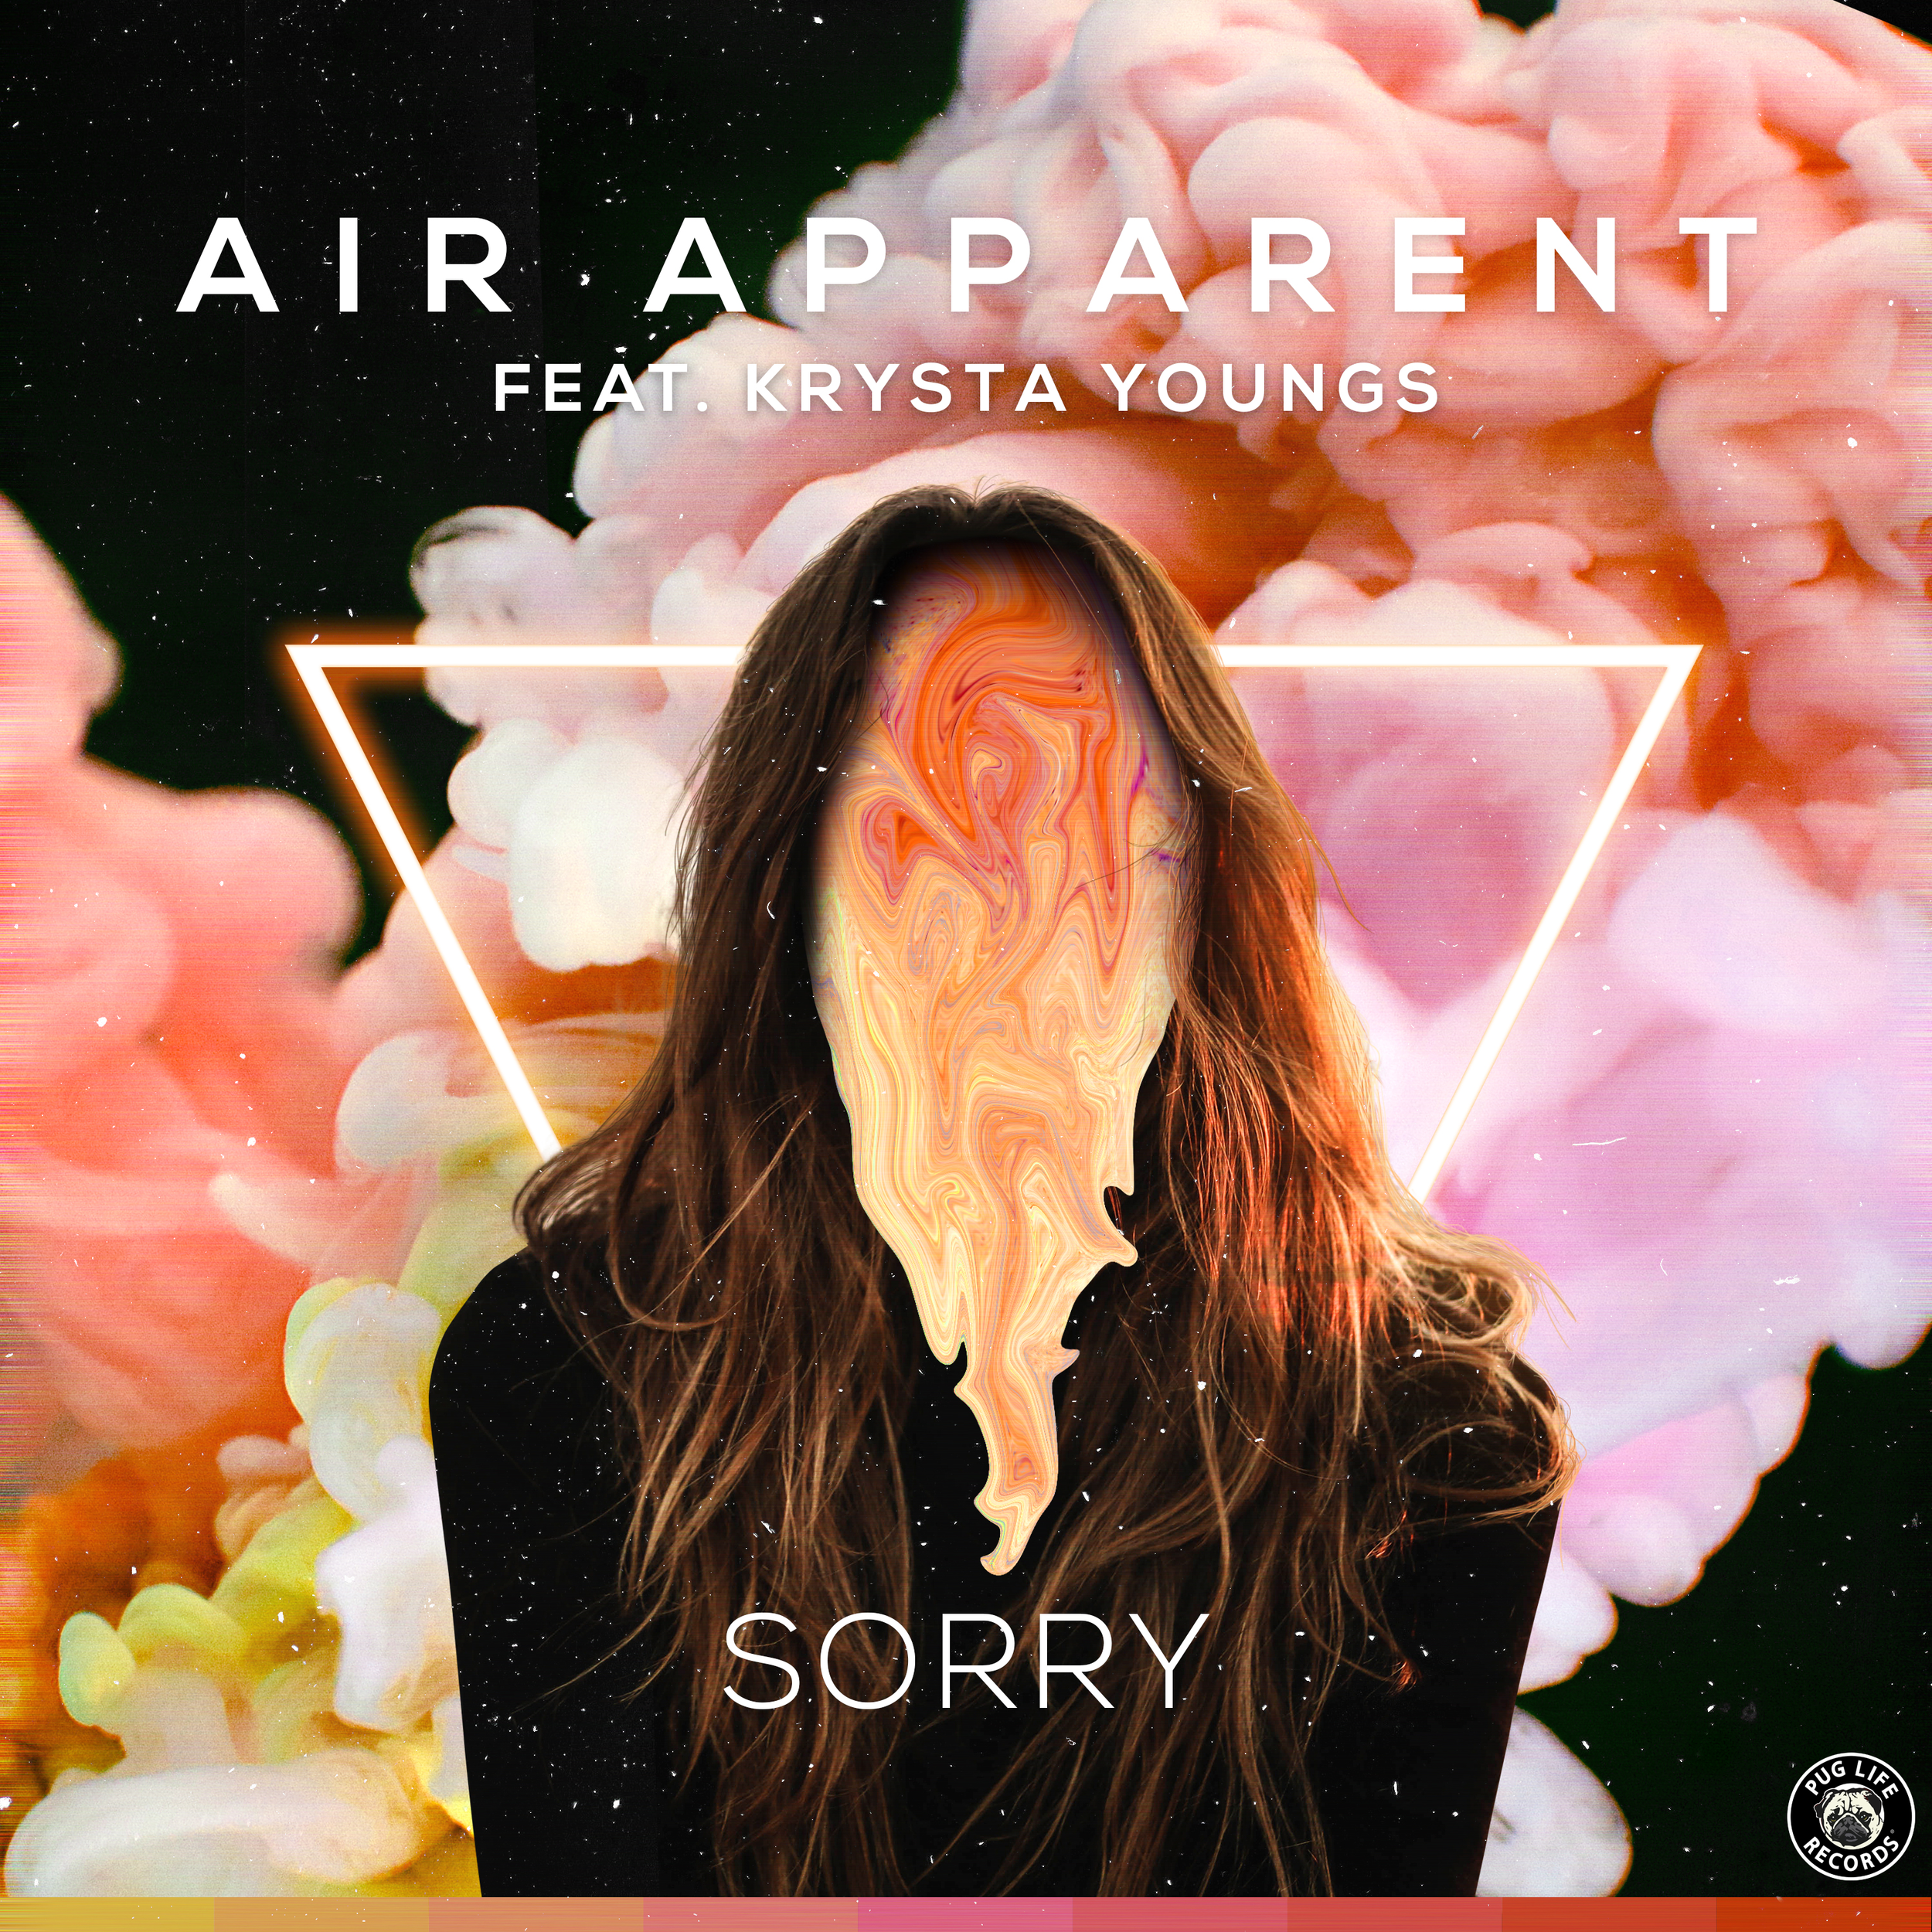 Sorry (feat. Krysta Youngs)